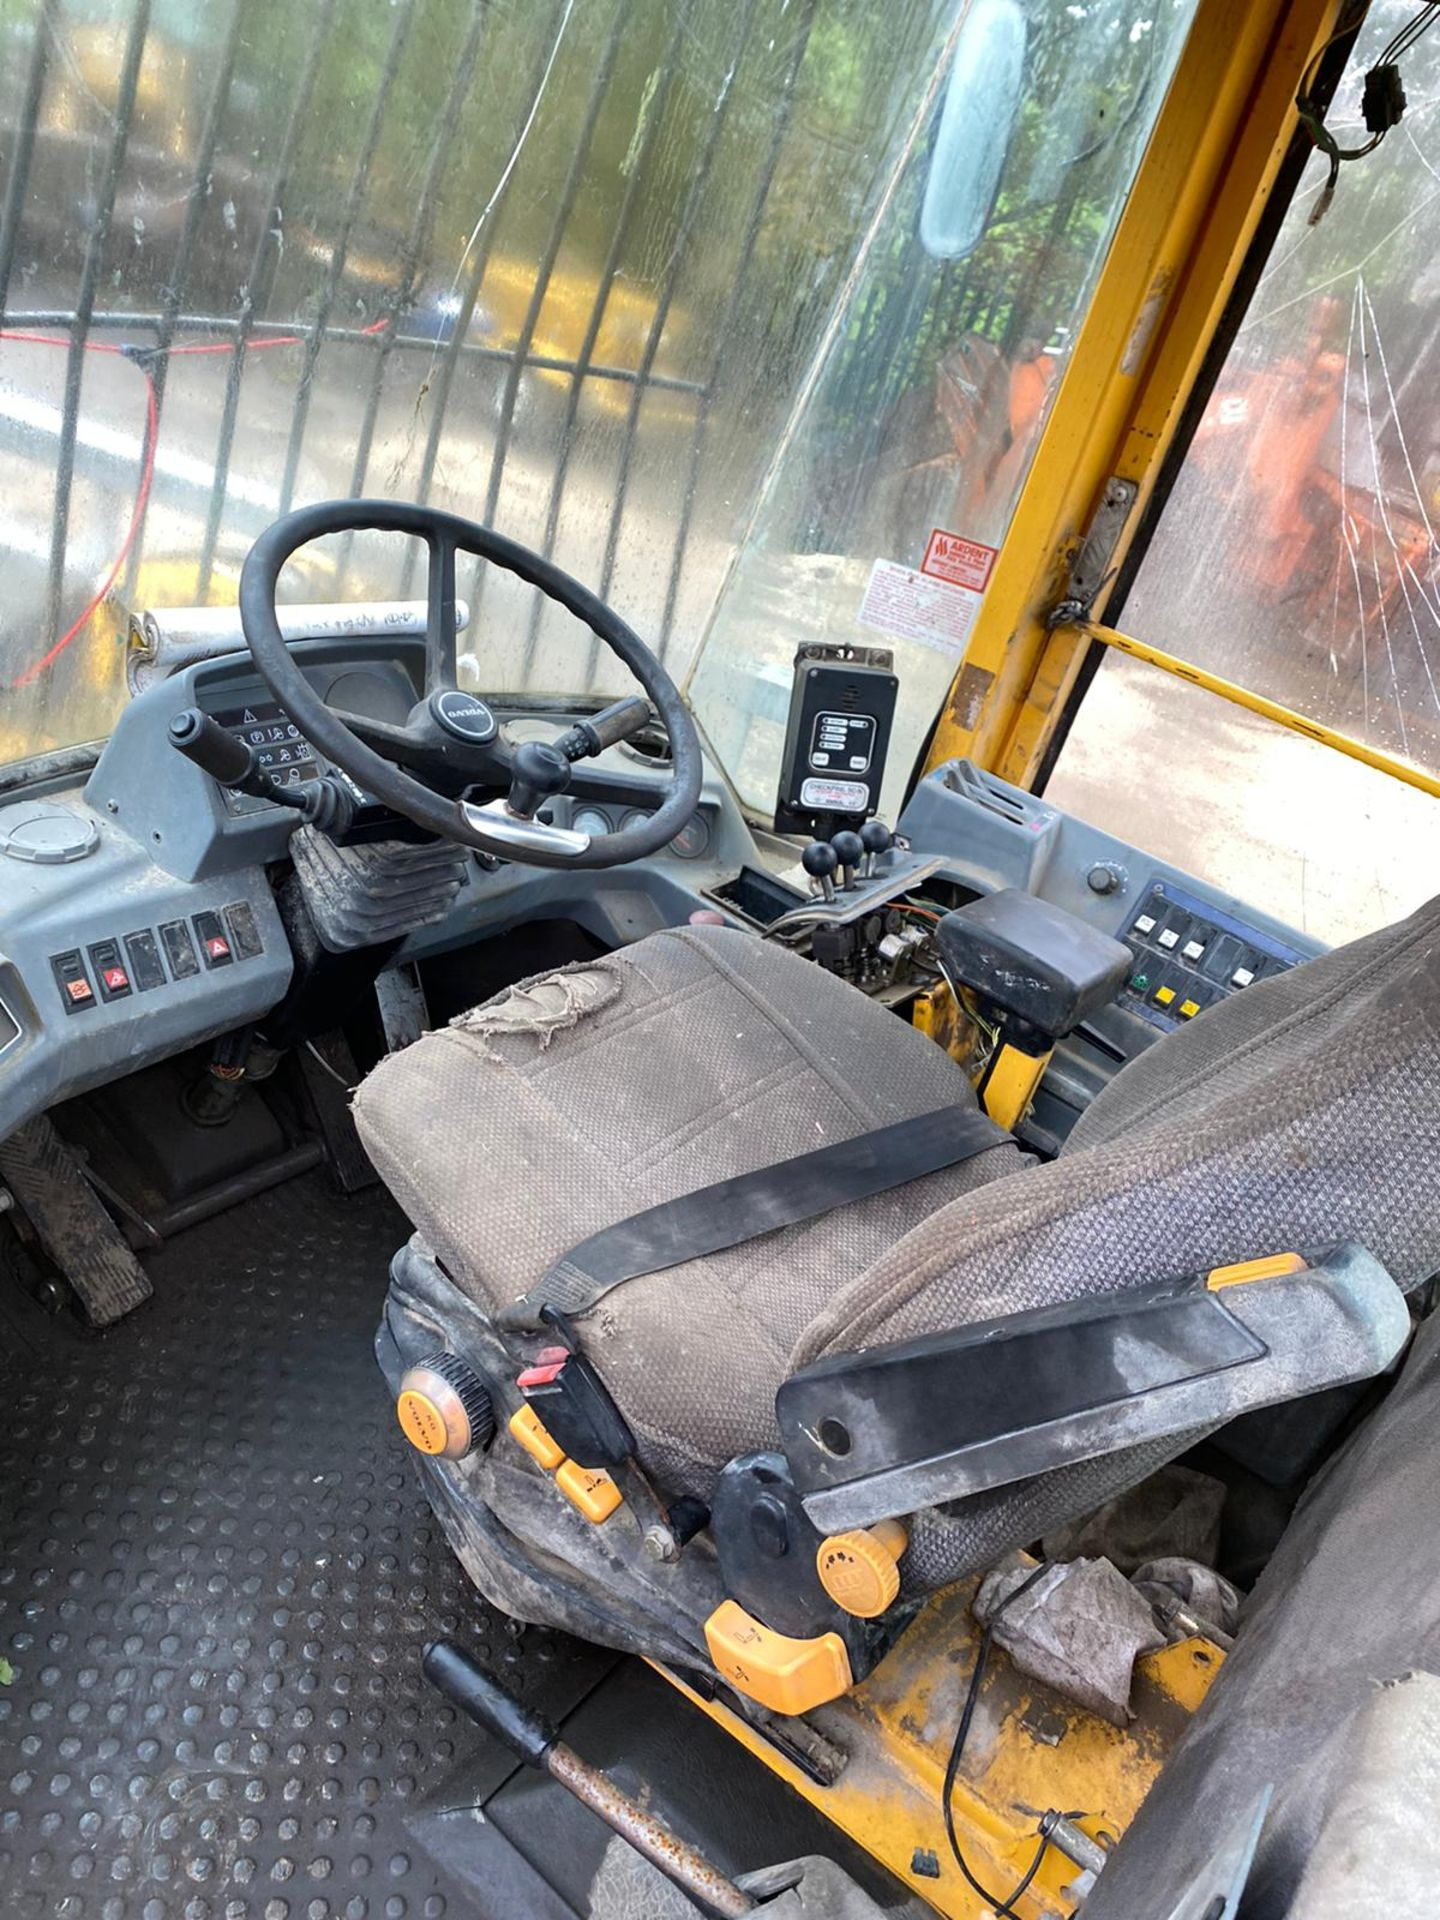 VOLVO L70C LOADING SHOVEL, RUNS AND LIFTS, BUT NO DASH LIGHTS SO FORWARD & REVERSE DONT WORK - Image 8 of 9